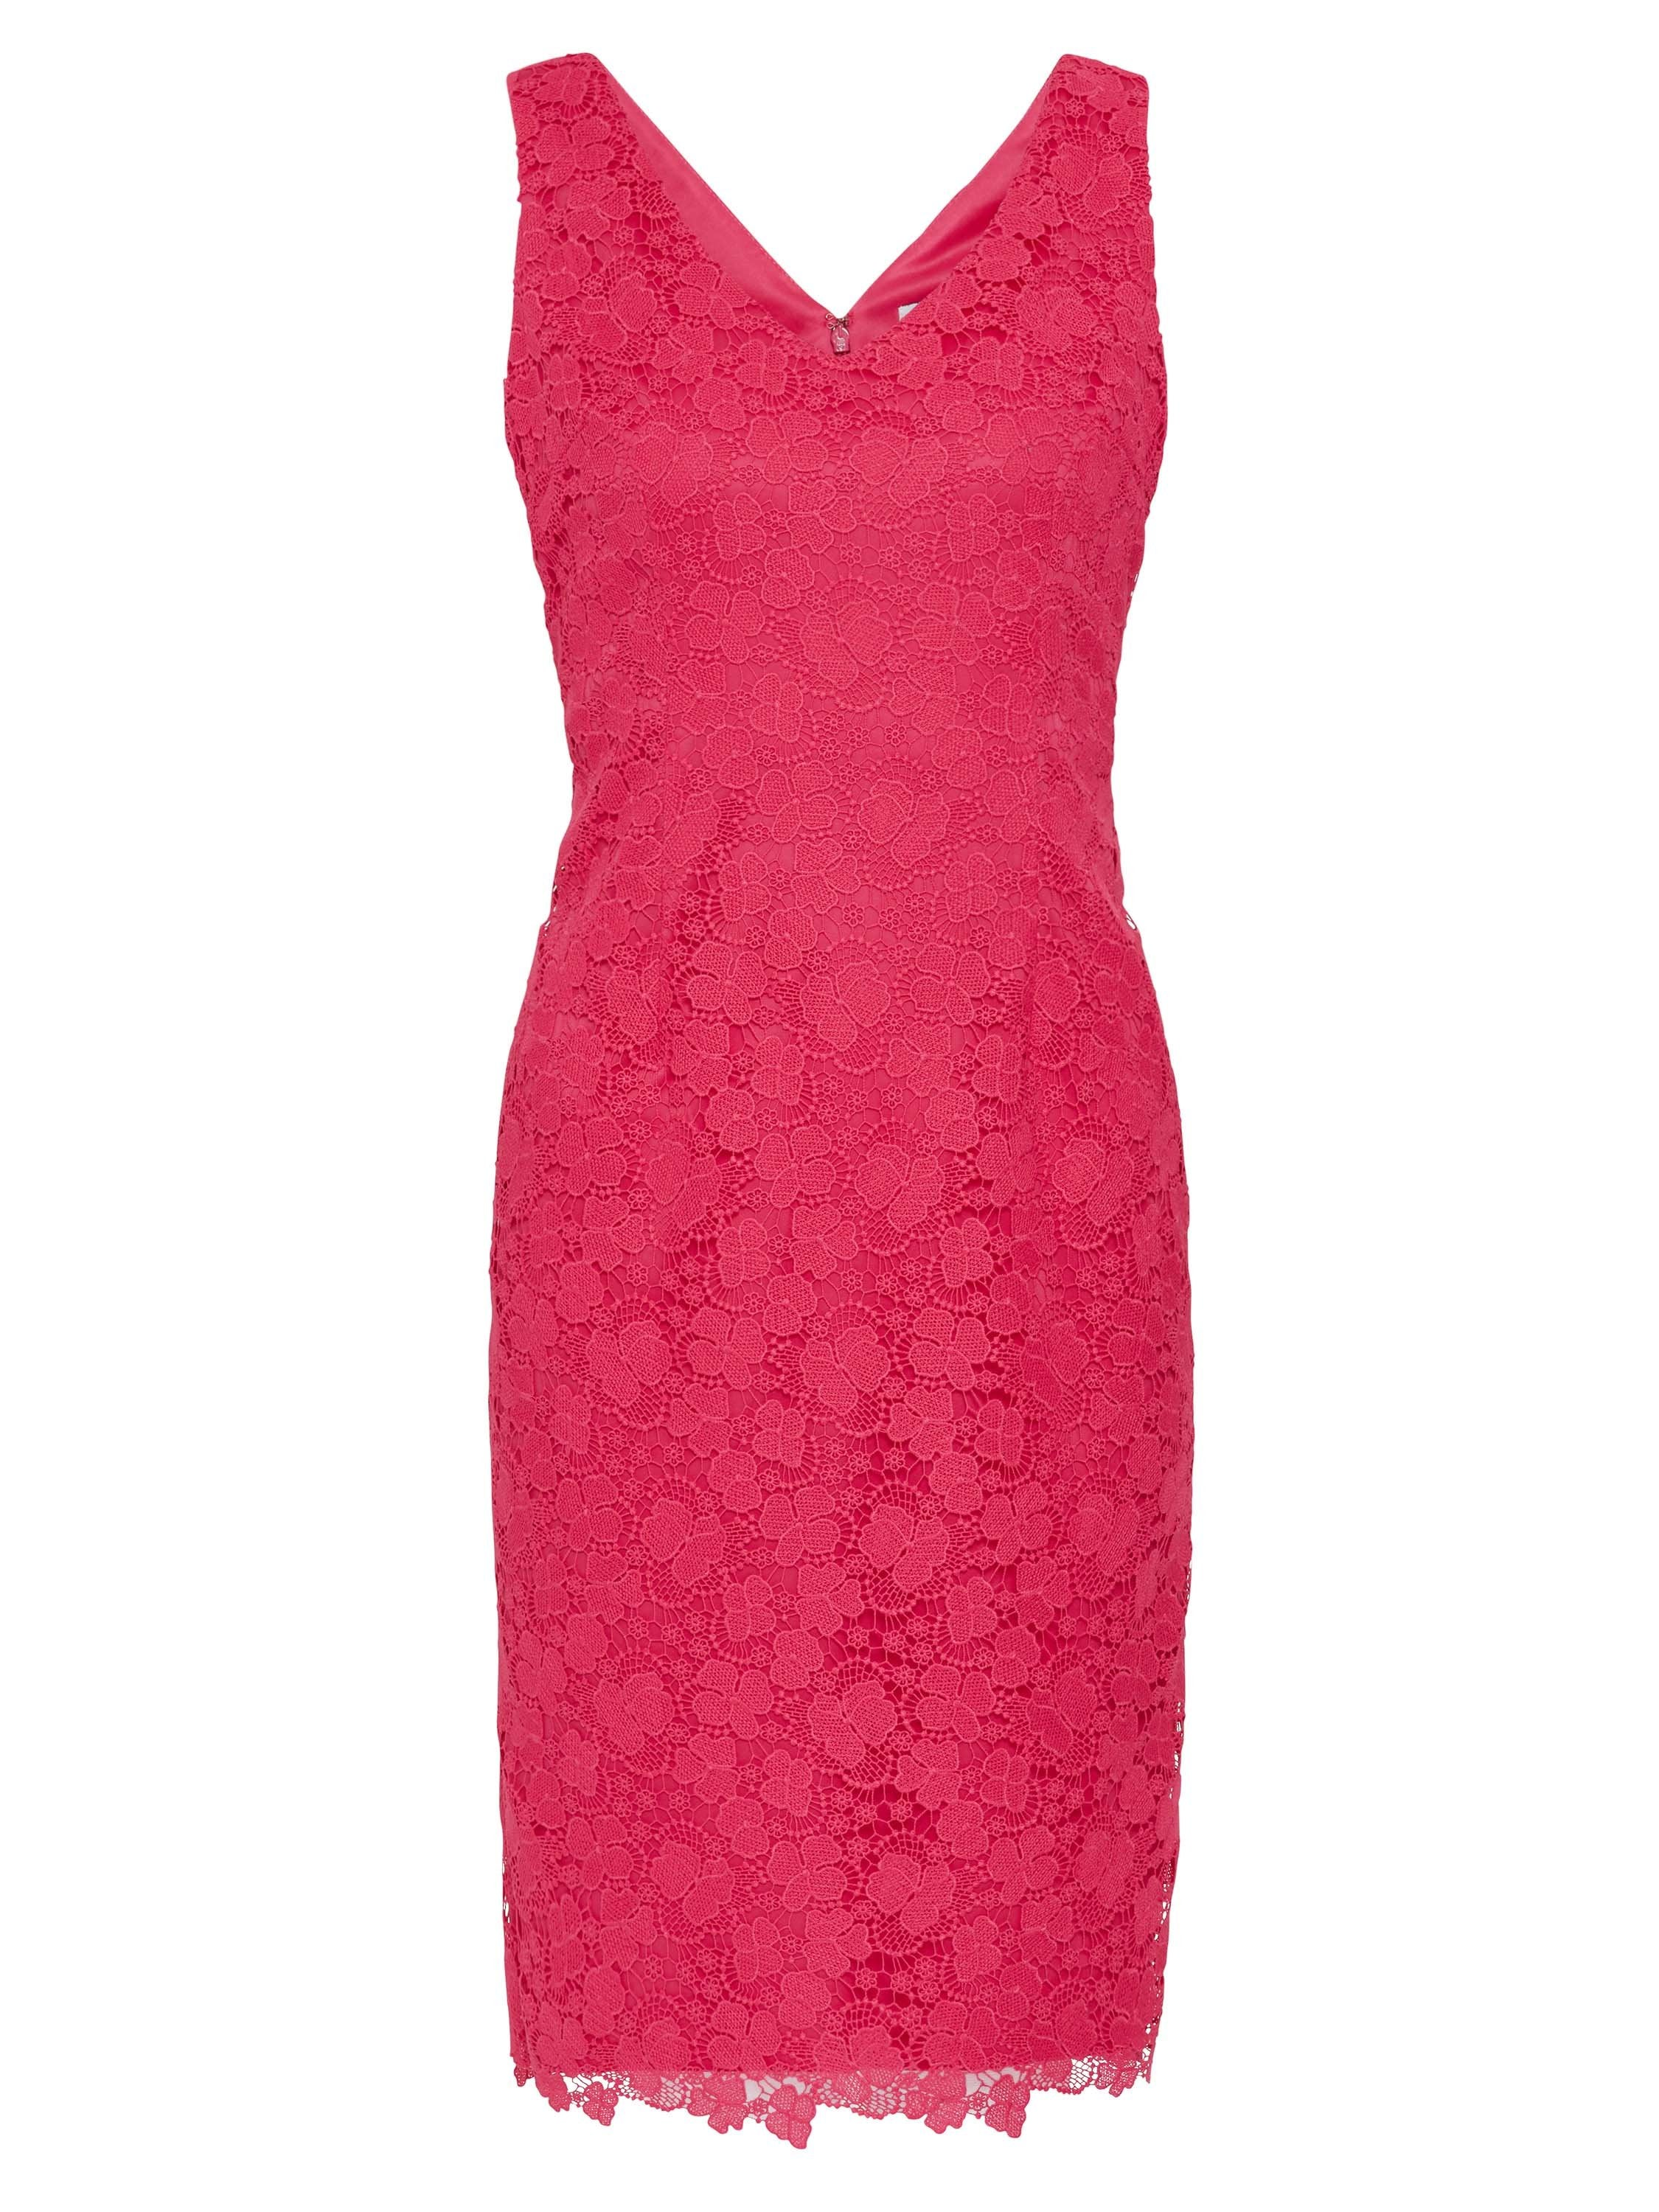 Gina Bacconi Fuchsia Scallop Trim Lace Dress